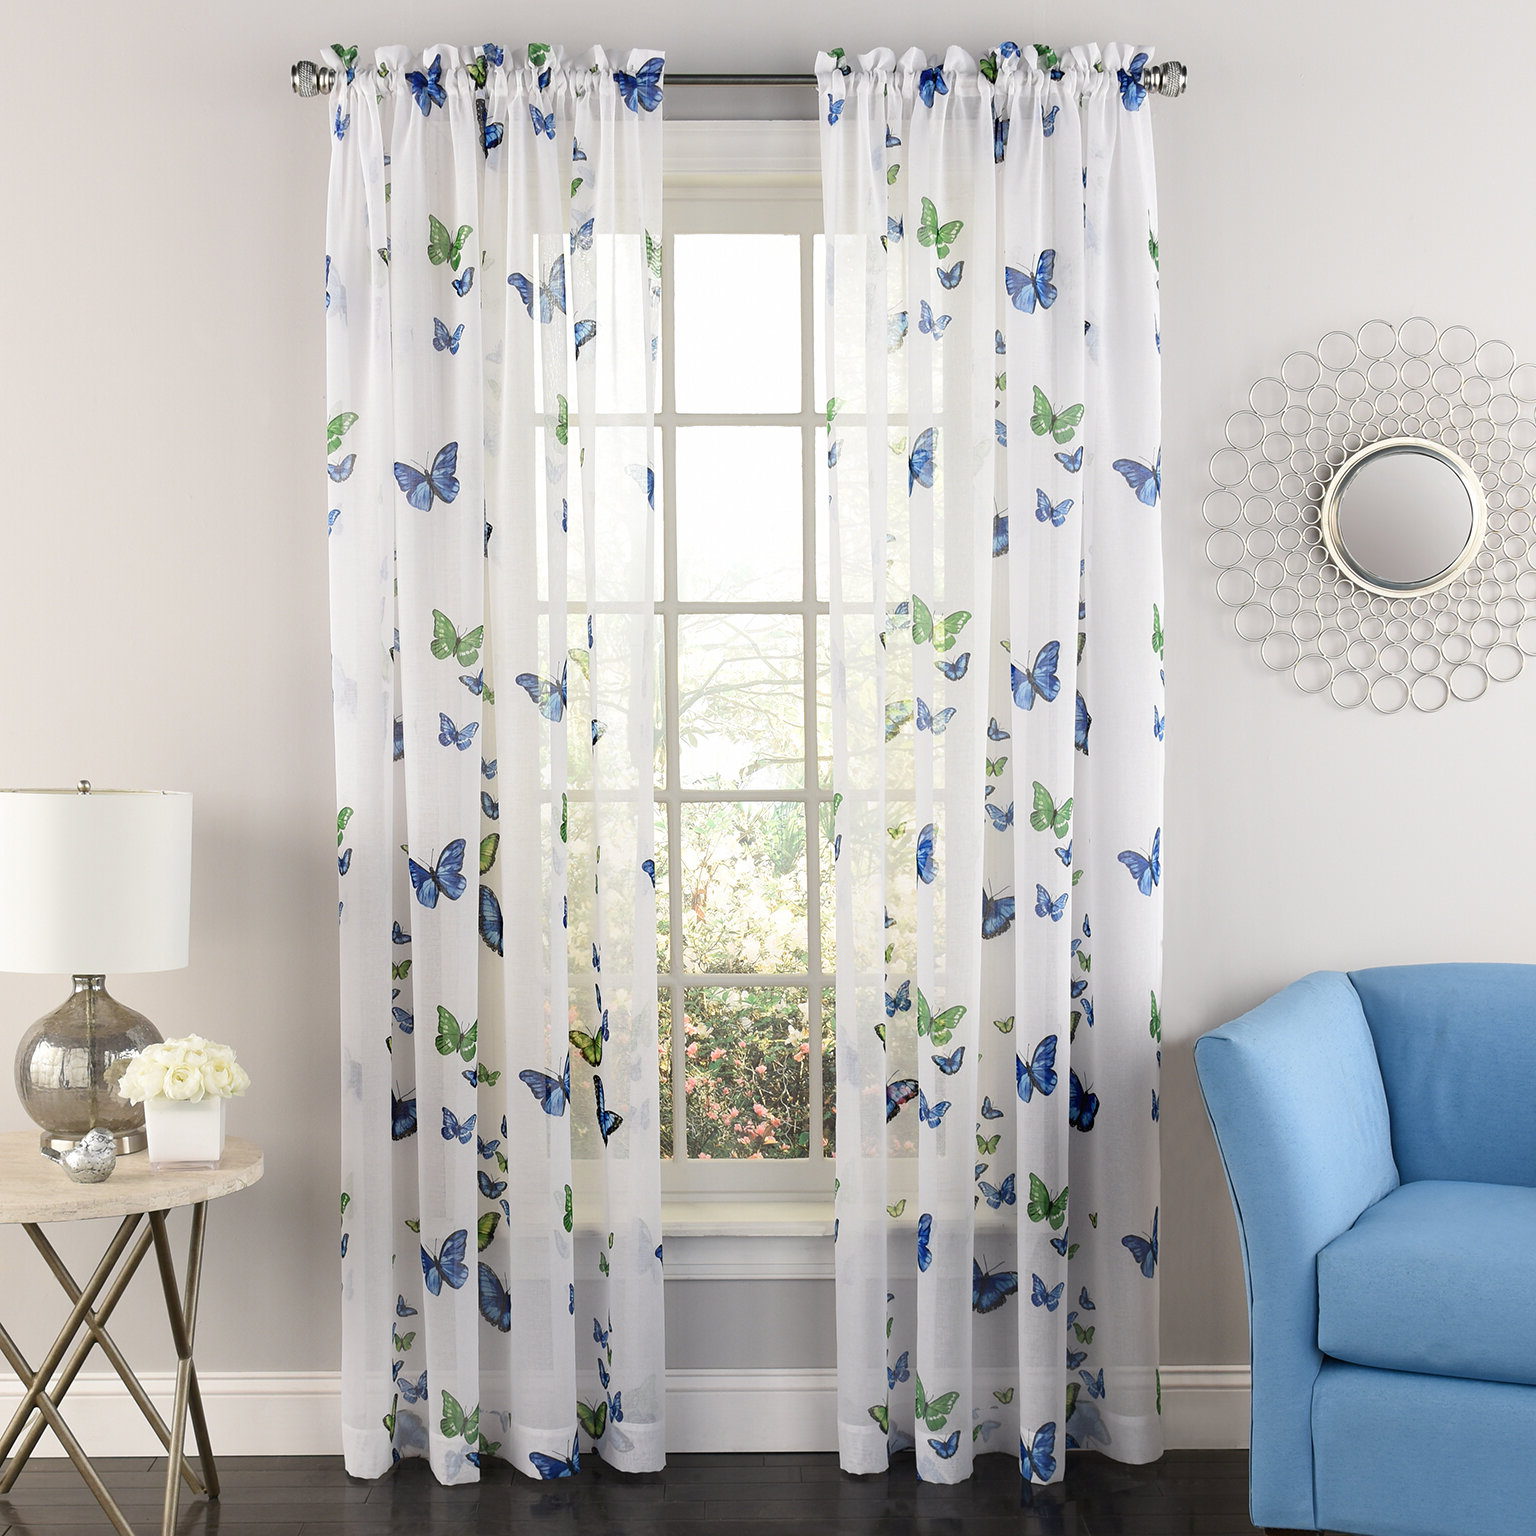 Well Liked Fetco Home Decor & Sweet Home Collection Hospitality Sale Regarding Traditional Two Piece Tailored Tier And Swag Window Curtains Sets With Ornate Rooster Print (View 20 of 20)